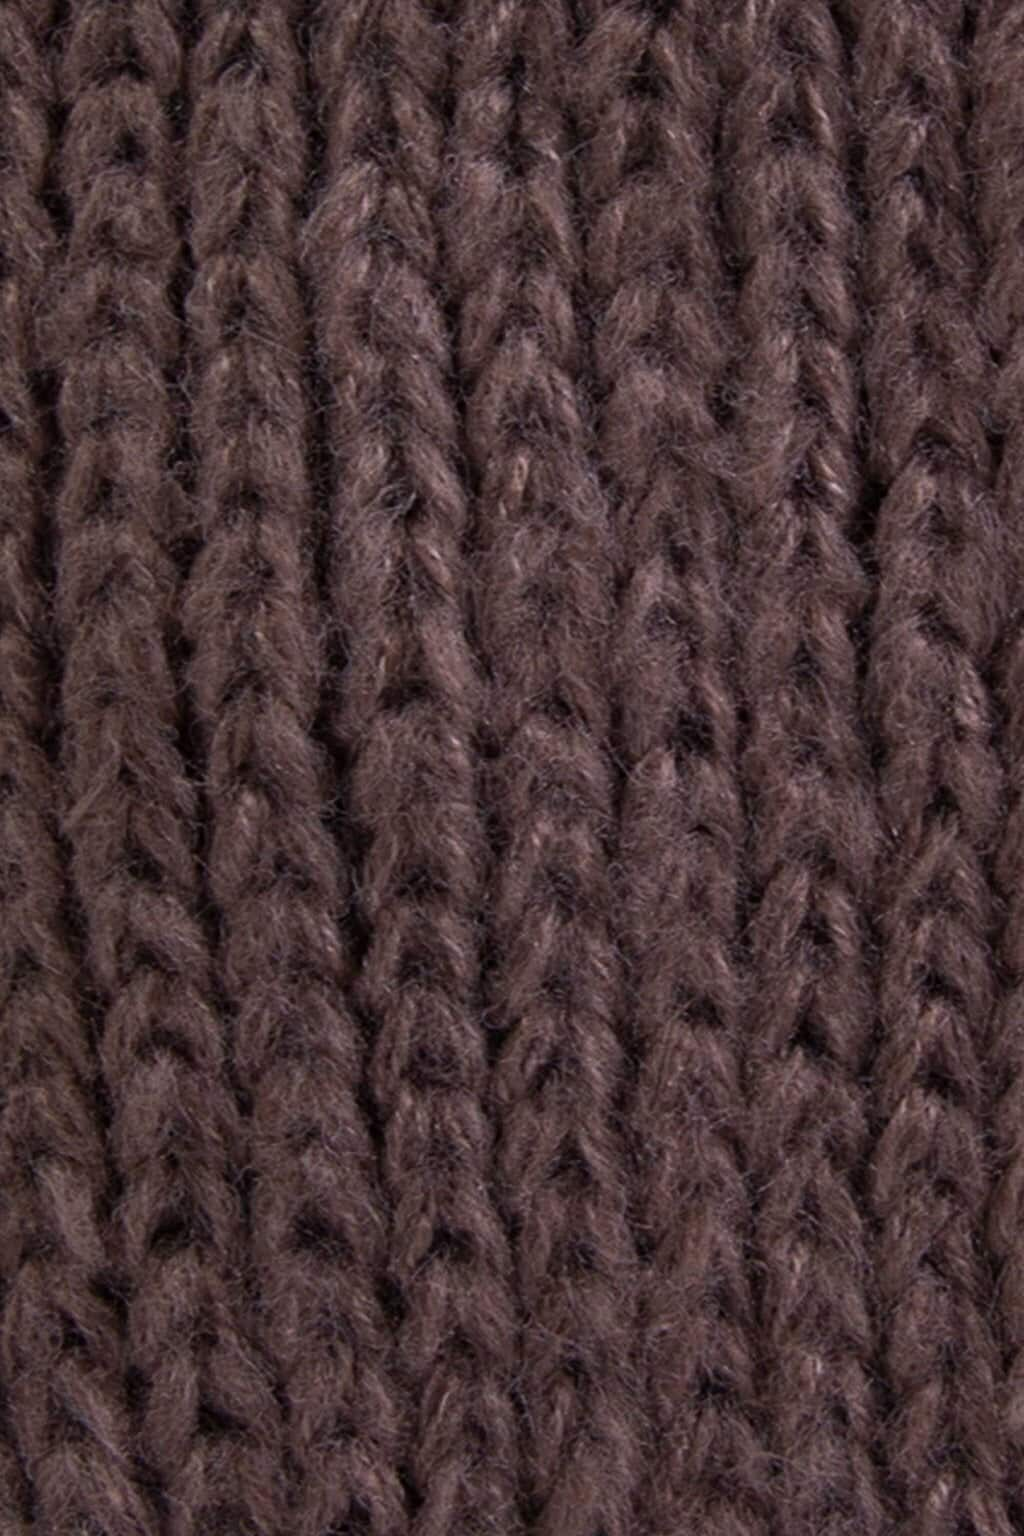 Scarf J002 Taupe 9